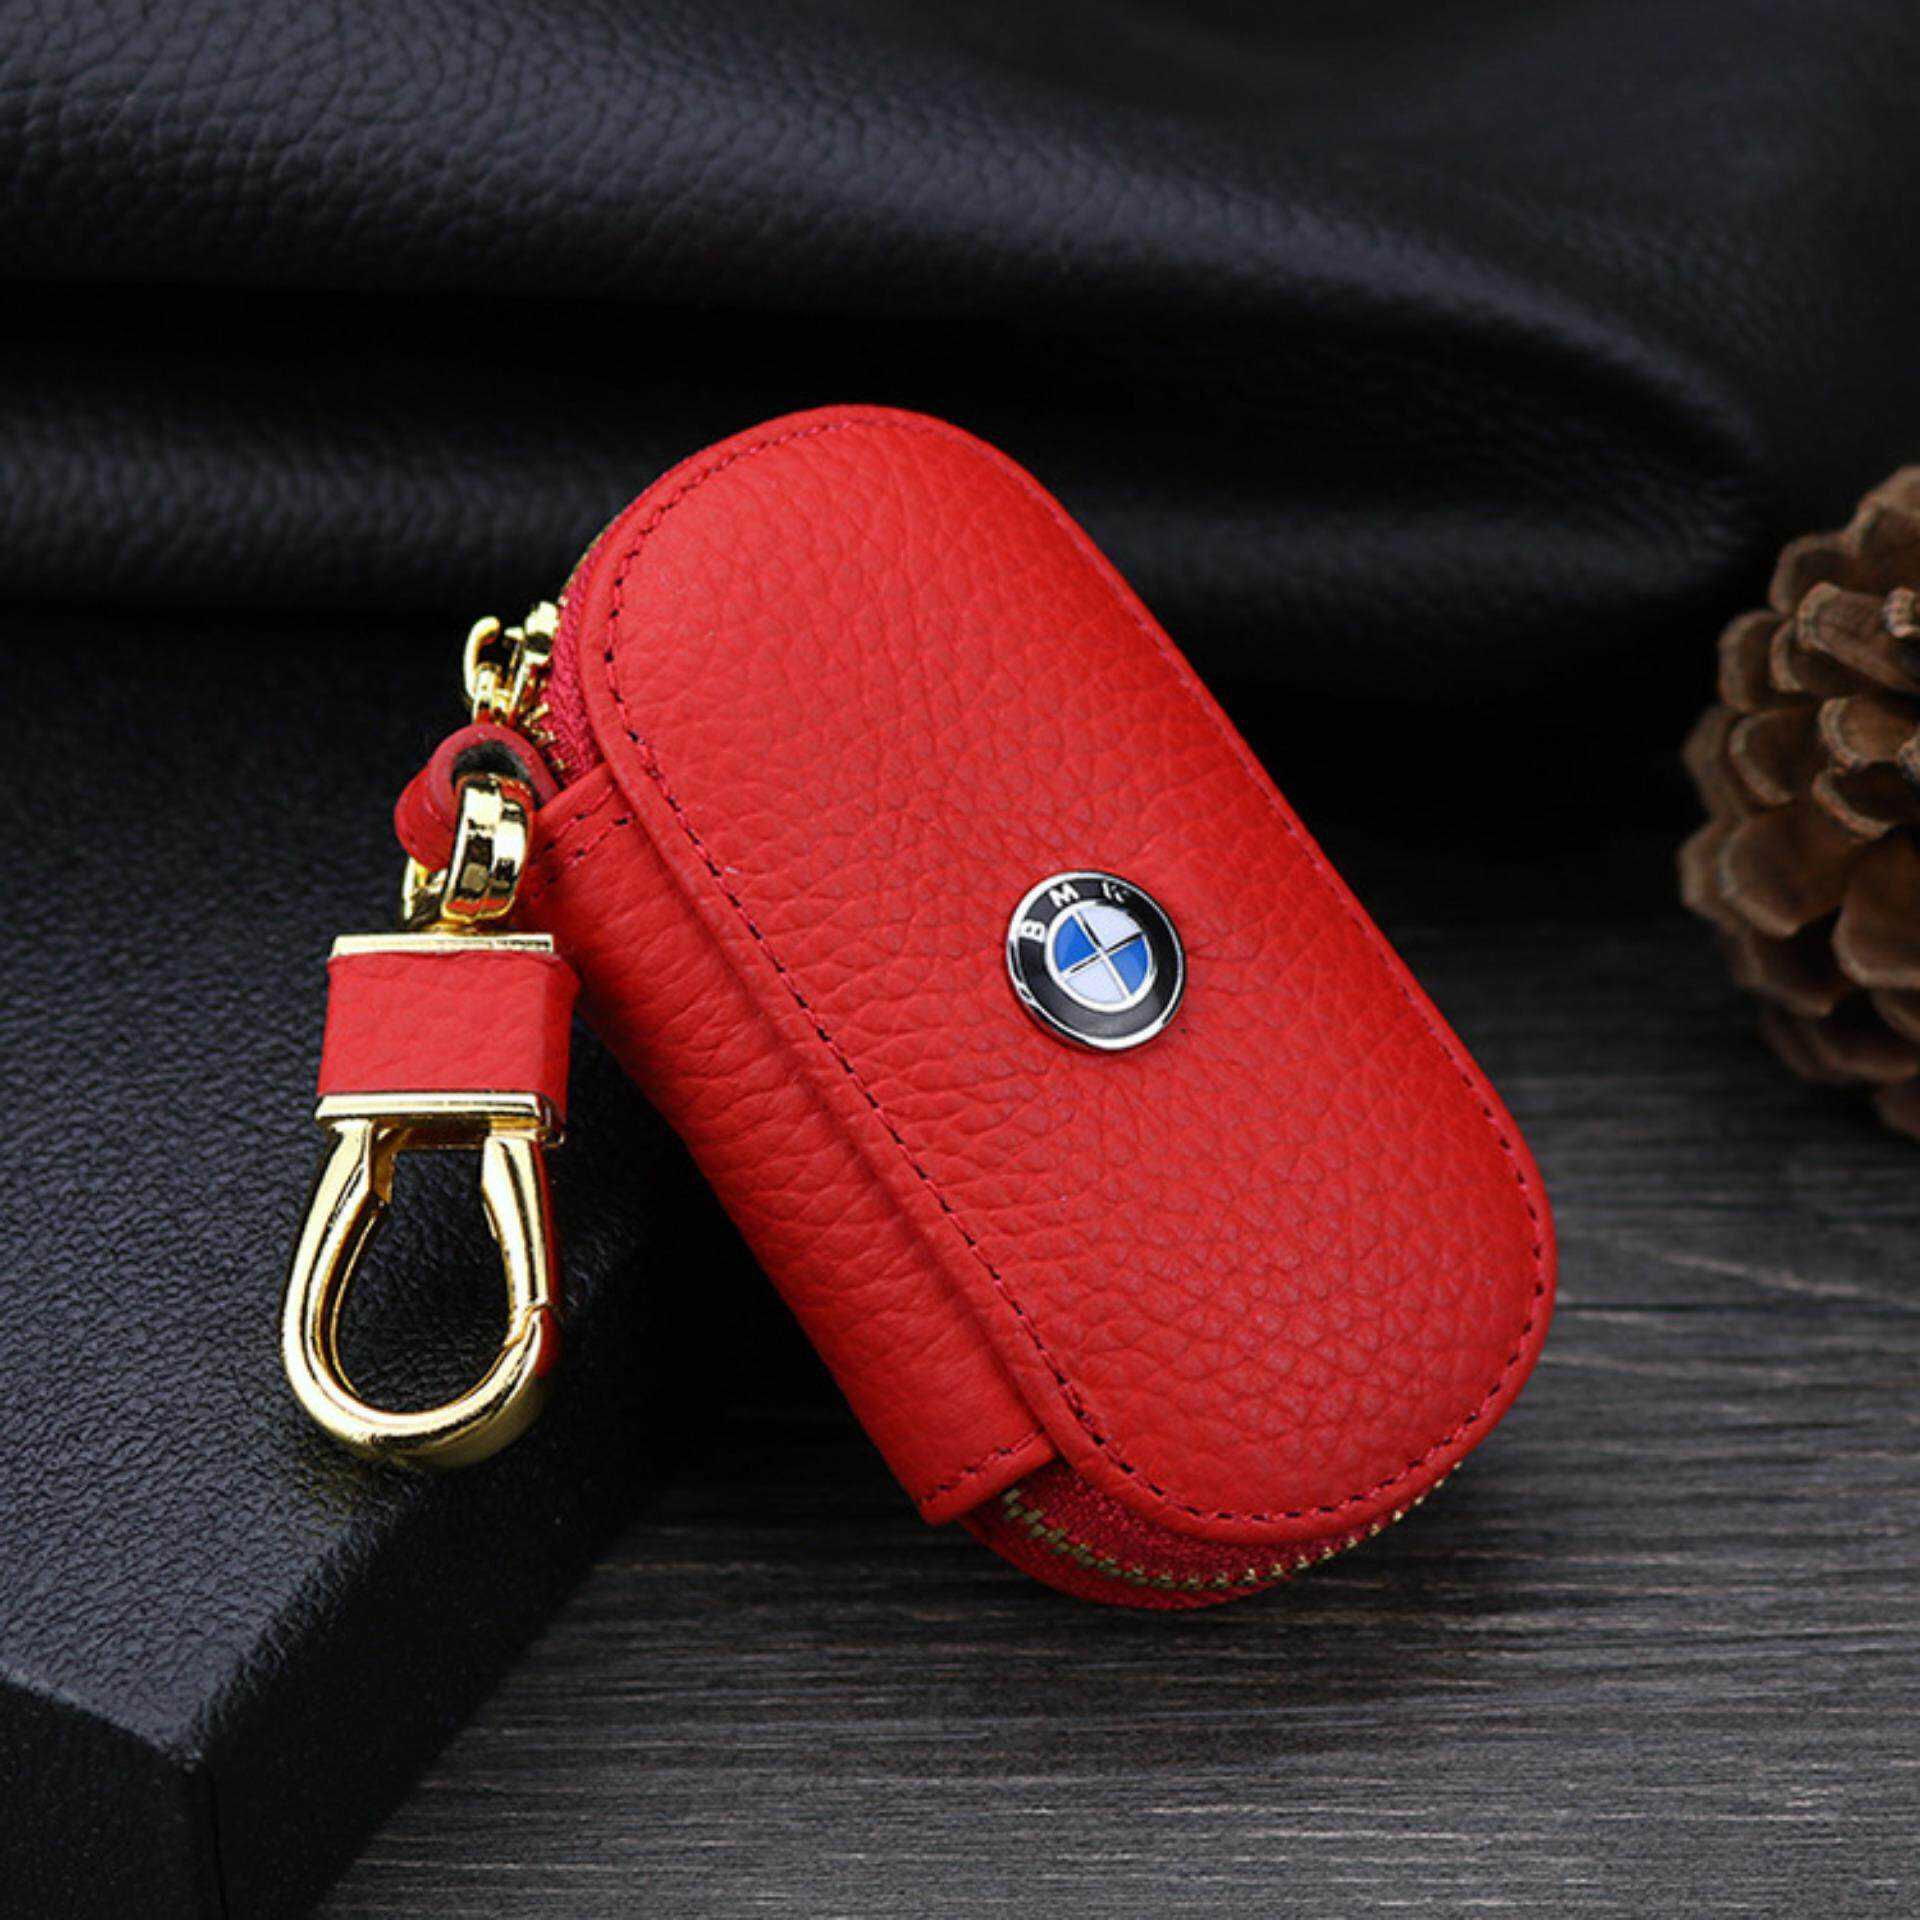 1pc Leather Key Wallet Car Key Case For For BMW E90 F10 F30 E34 F20 X5 E53 E30 X6 X1 X3 E46 E39 (red) - intl